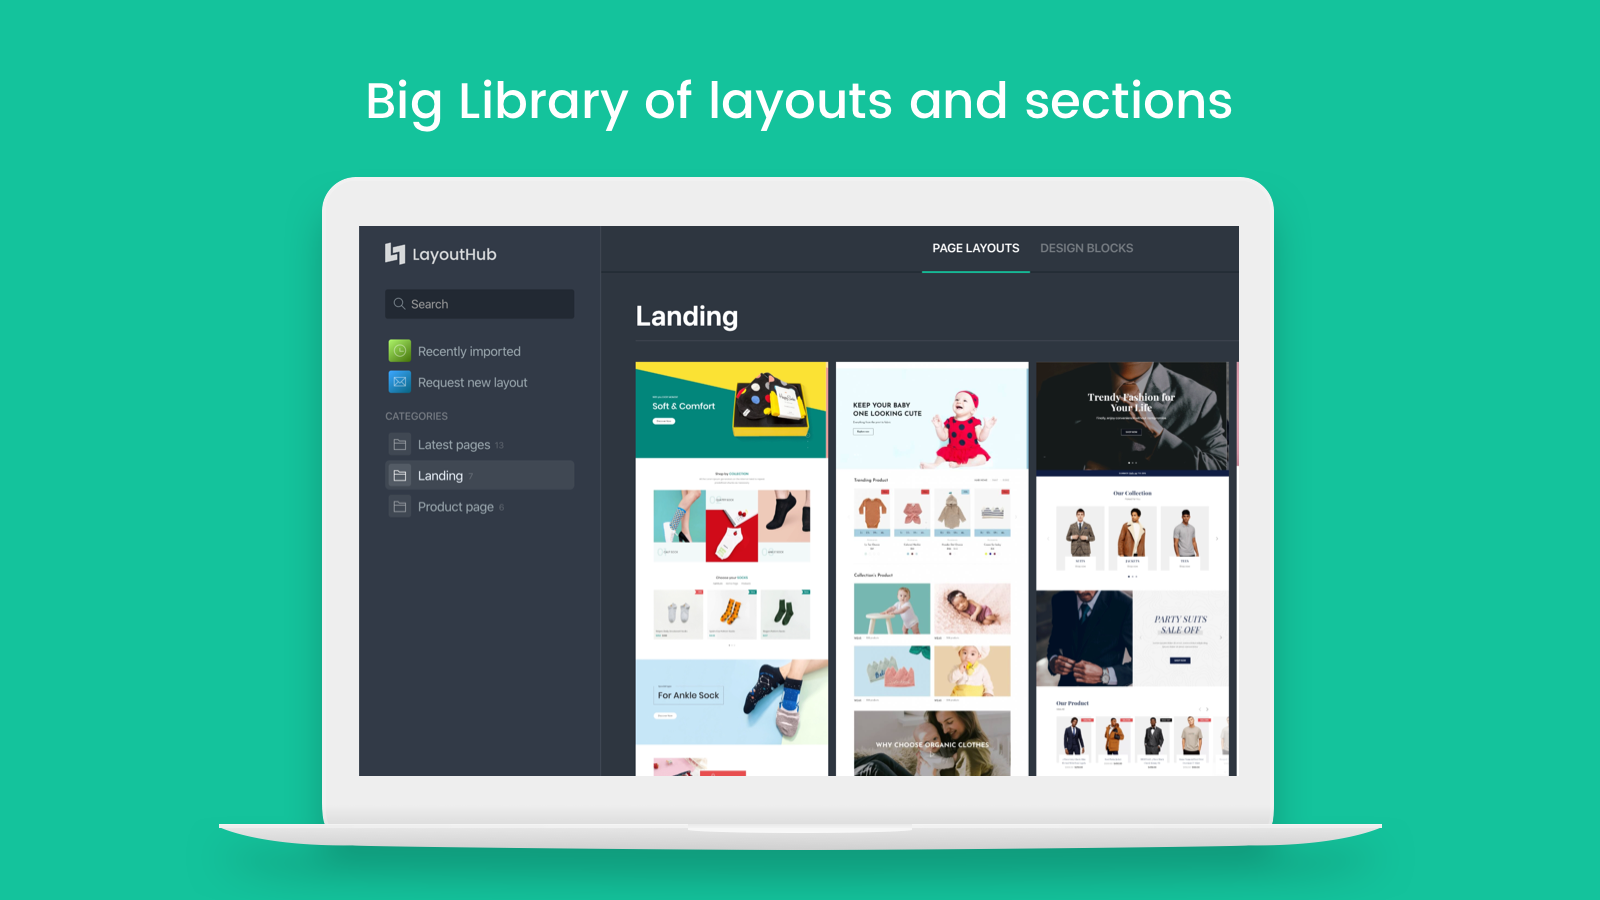 Big Library of layouts and sections